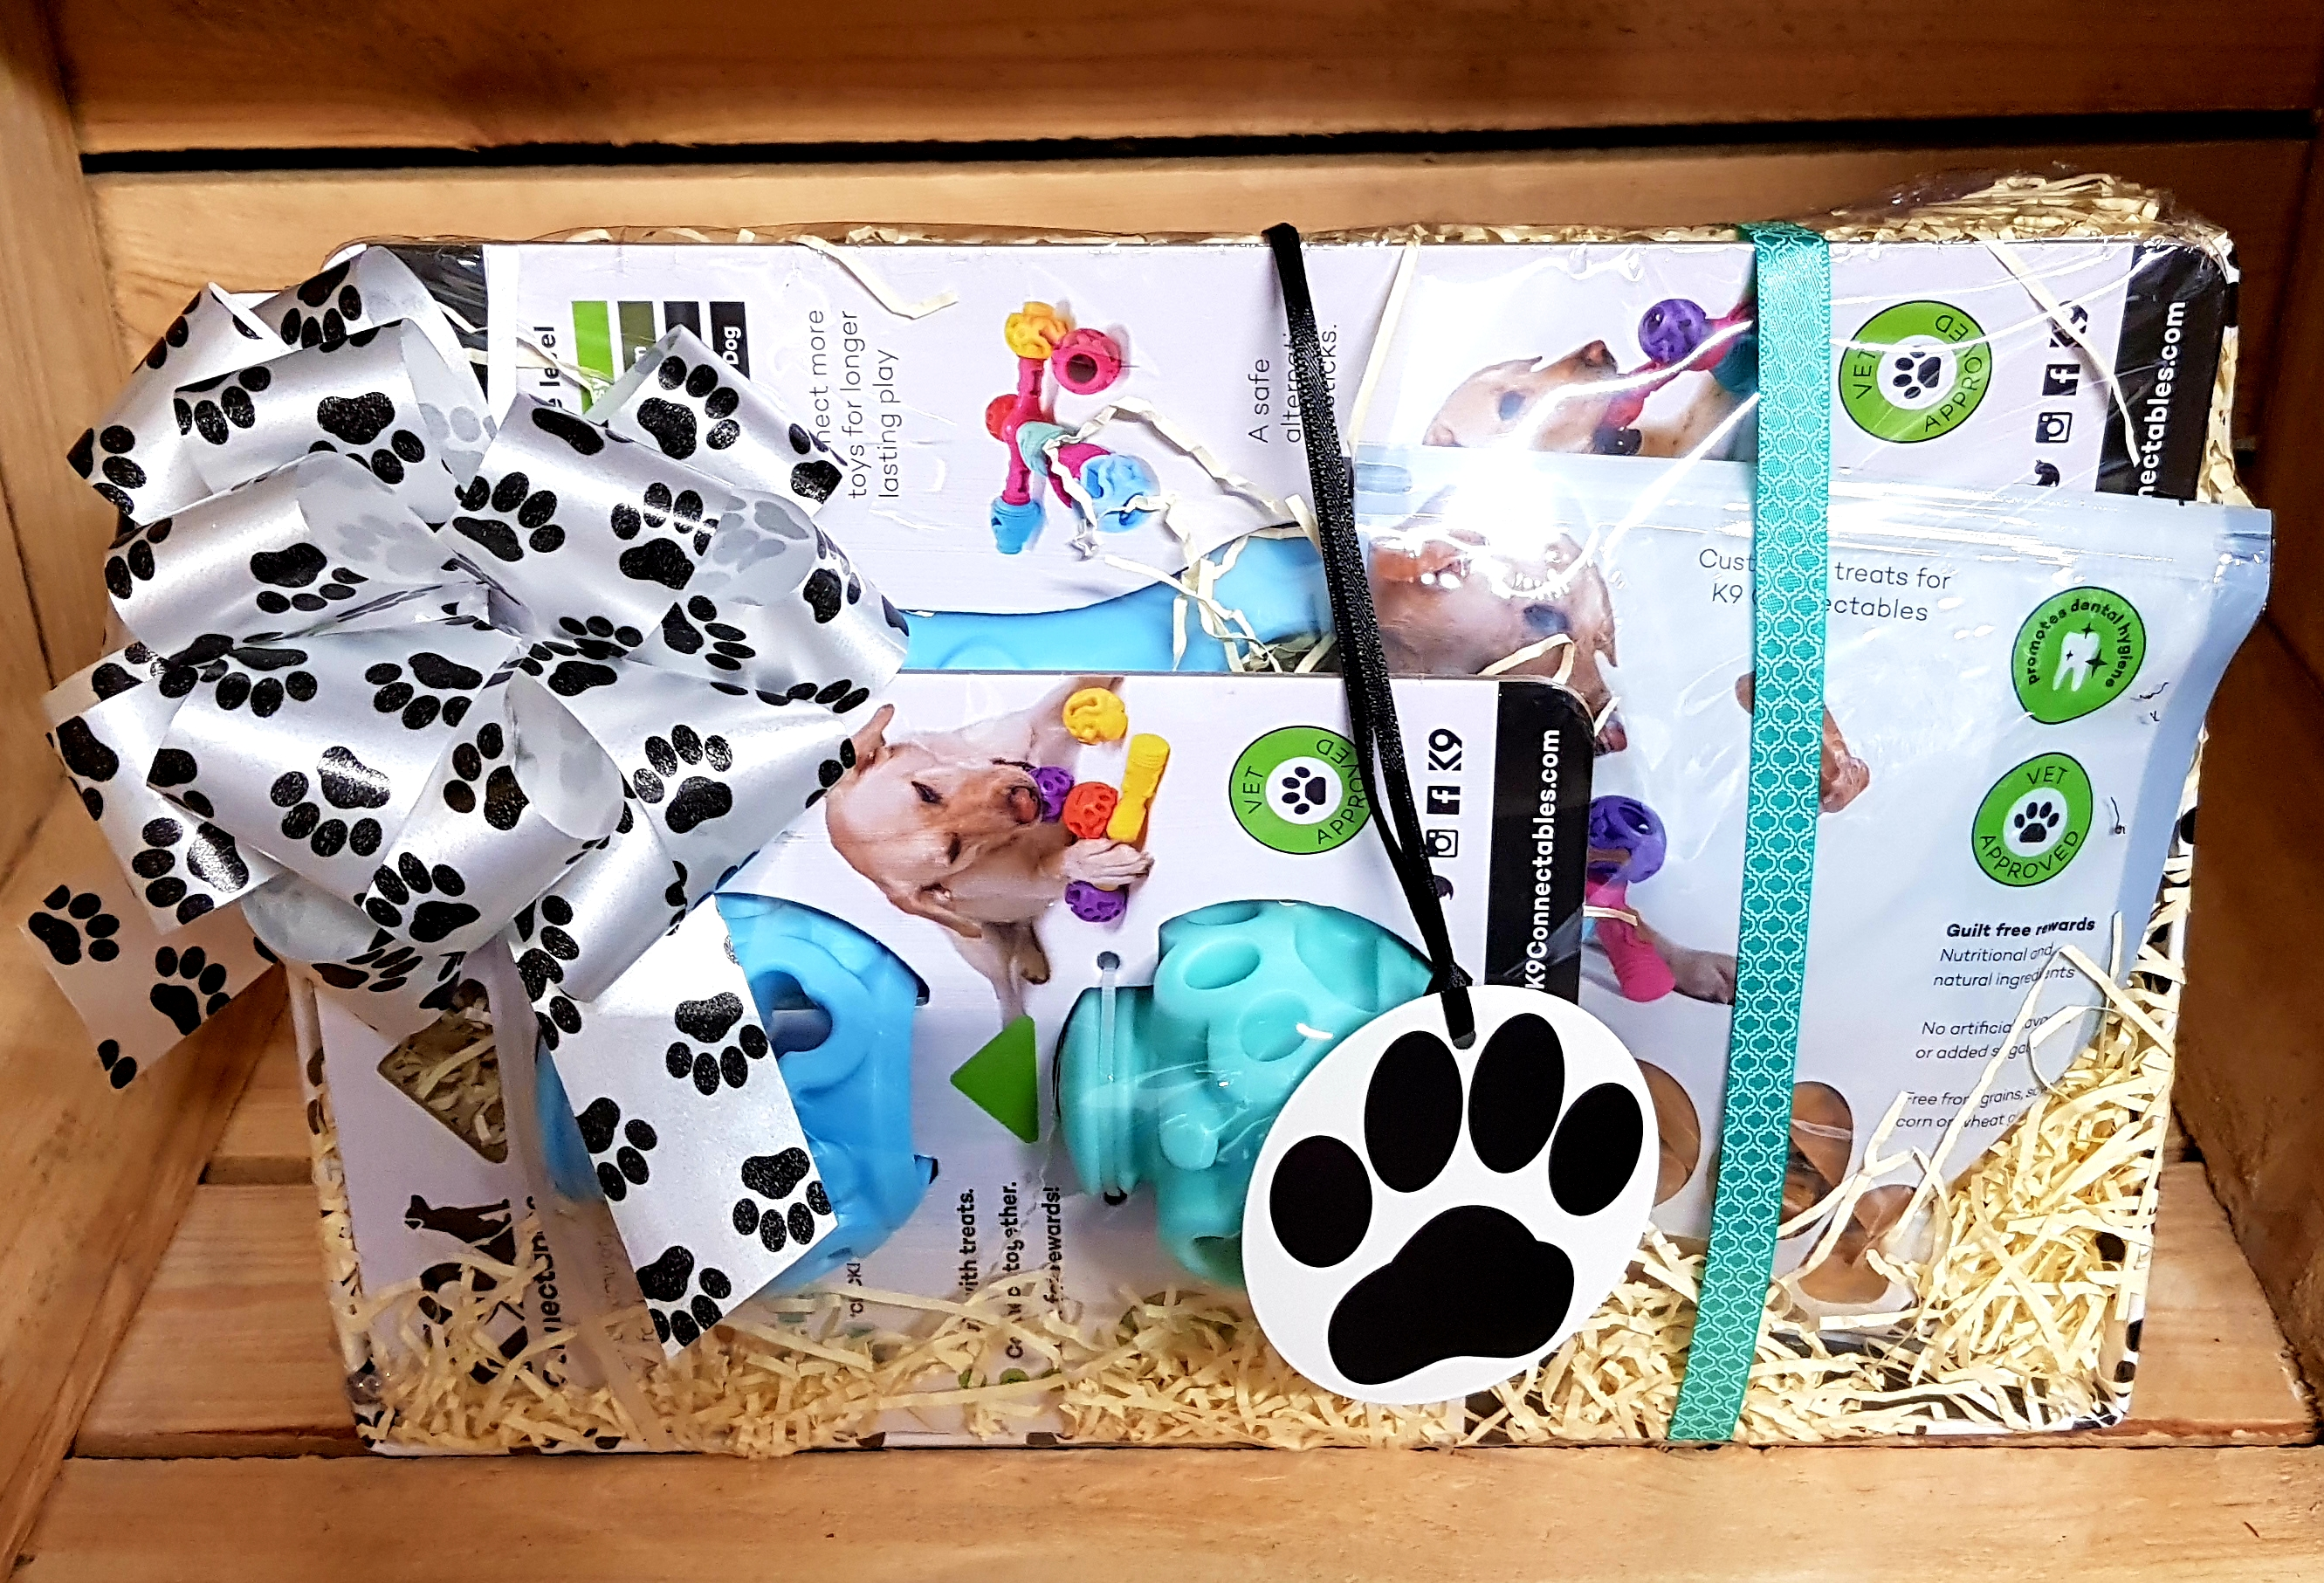 K9-Connectables-Toy-Hamper